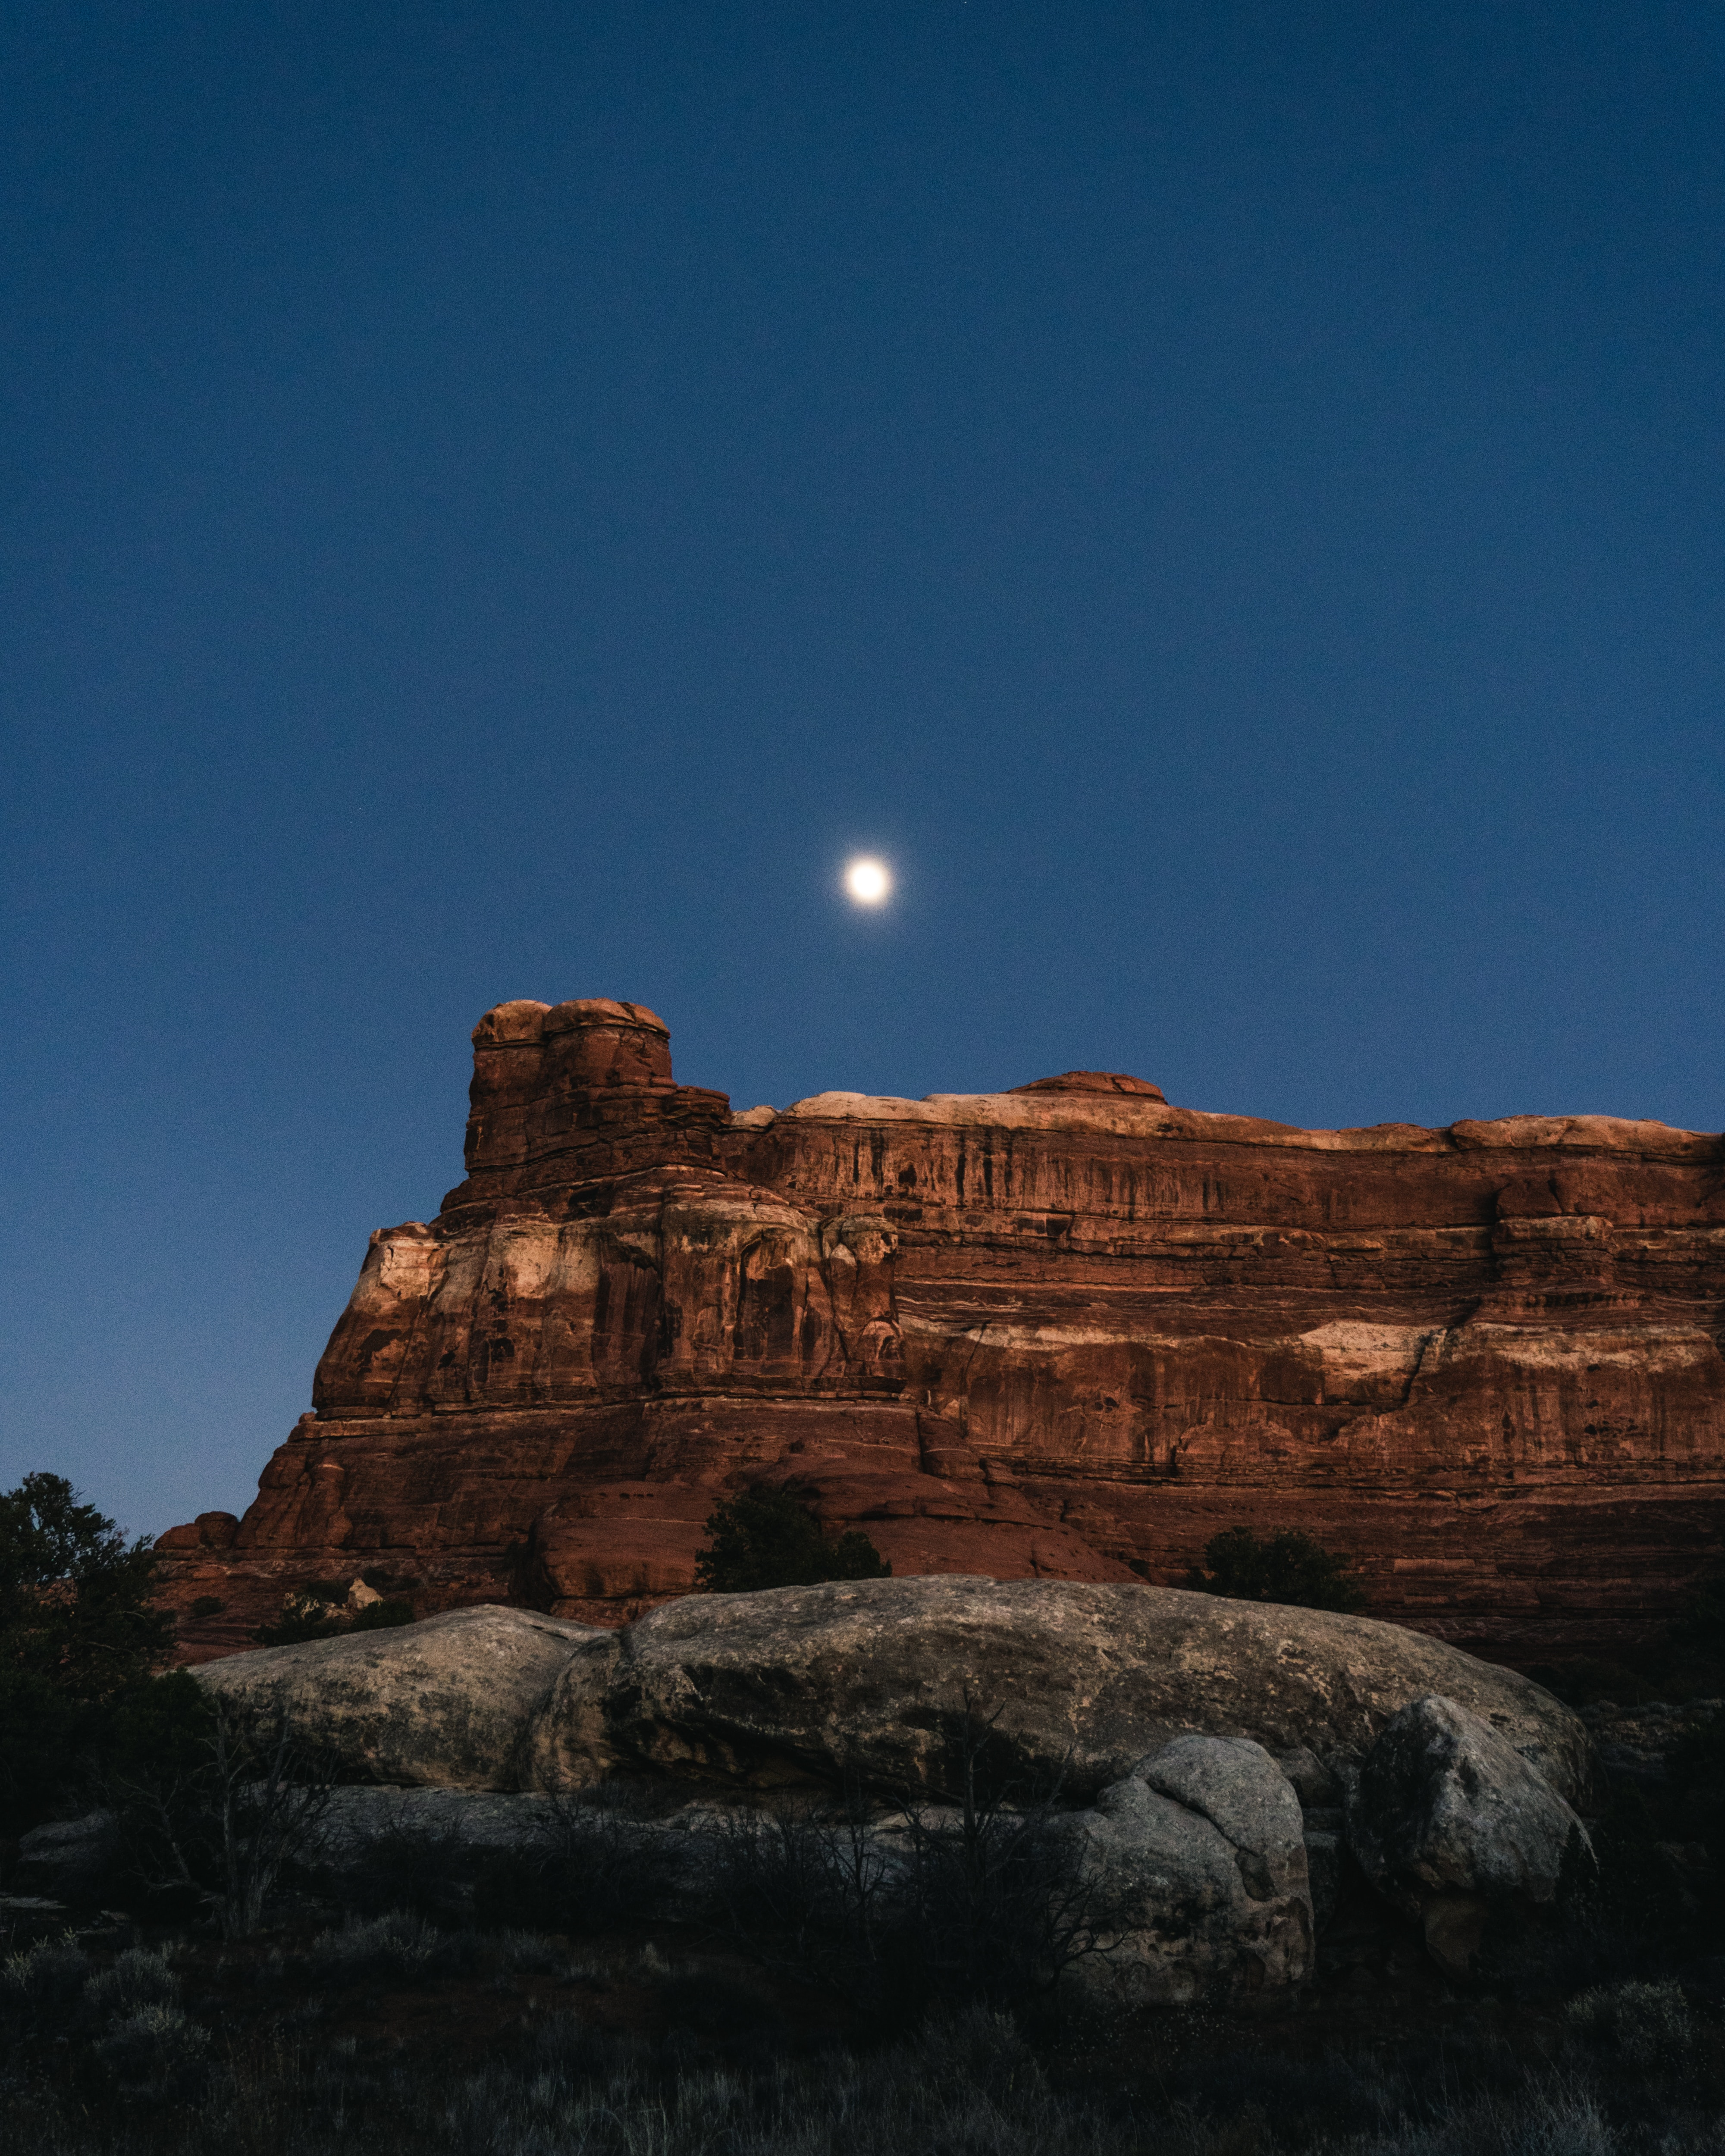 133270 download wallpaper Nature, Canyon, Rocks, Night, Moon, Landscape screensavers and pictures for free